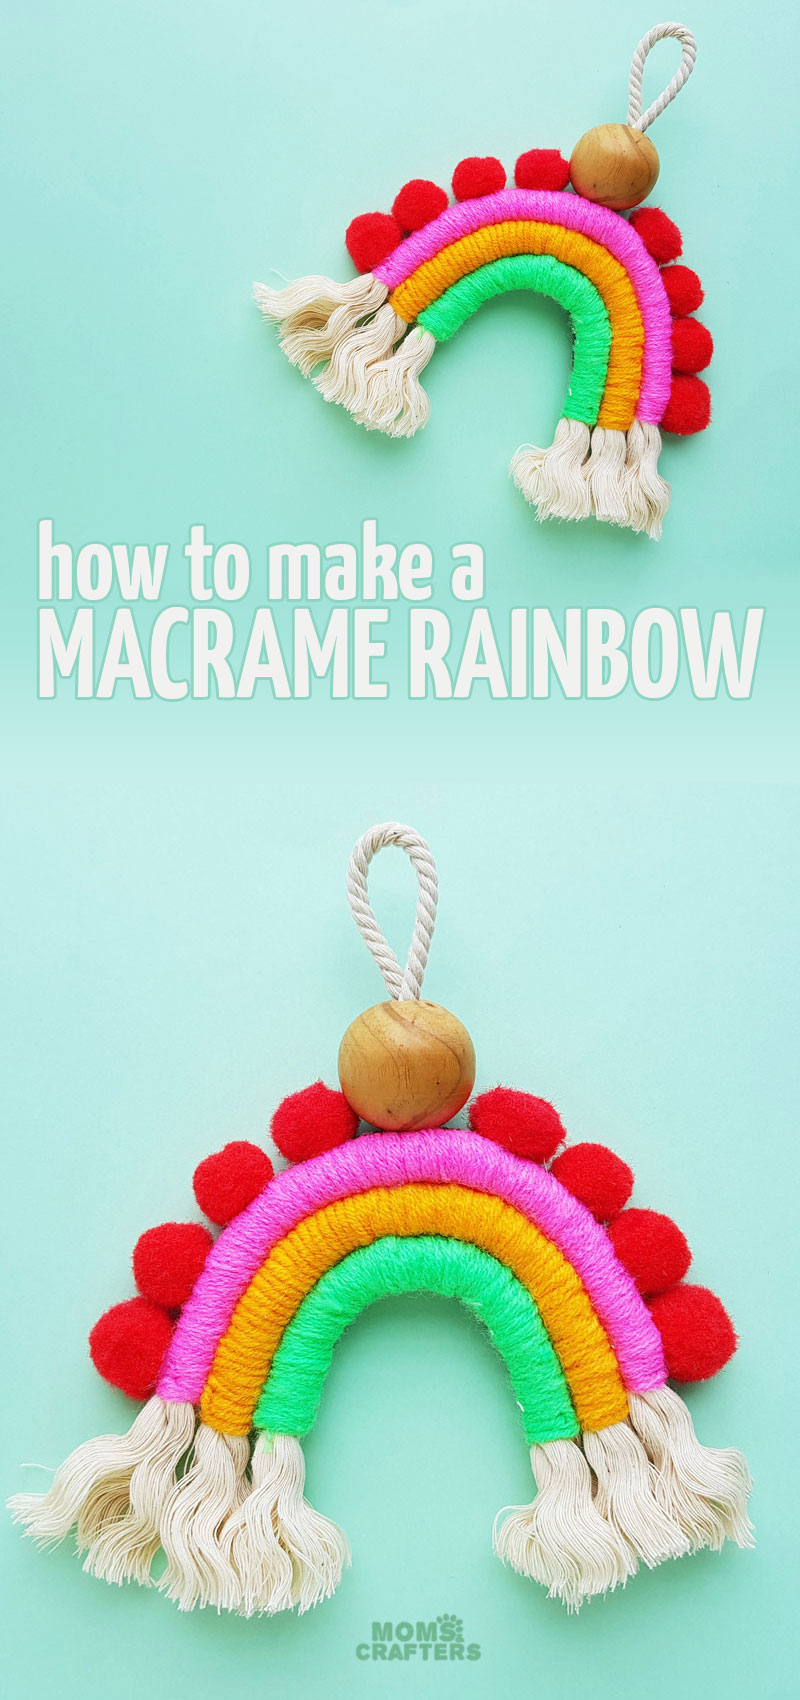 LEarn how to make a macrame rainbow wall hanging or charm for your home! This adorable DIY home decor craft for teens and tweens is also a great nursery or playroom decor idea!